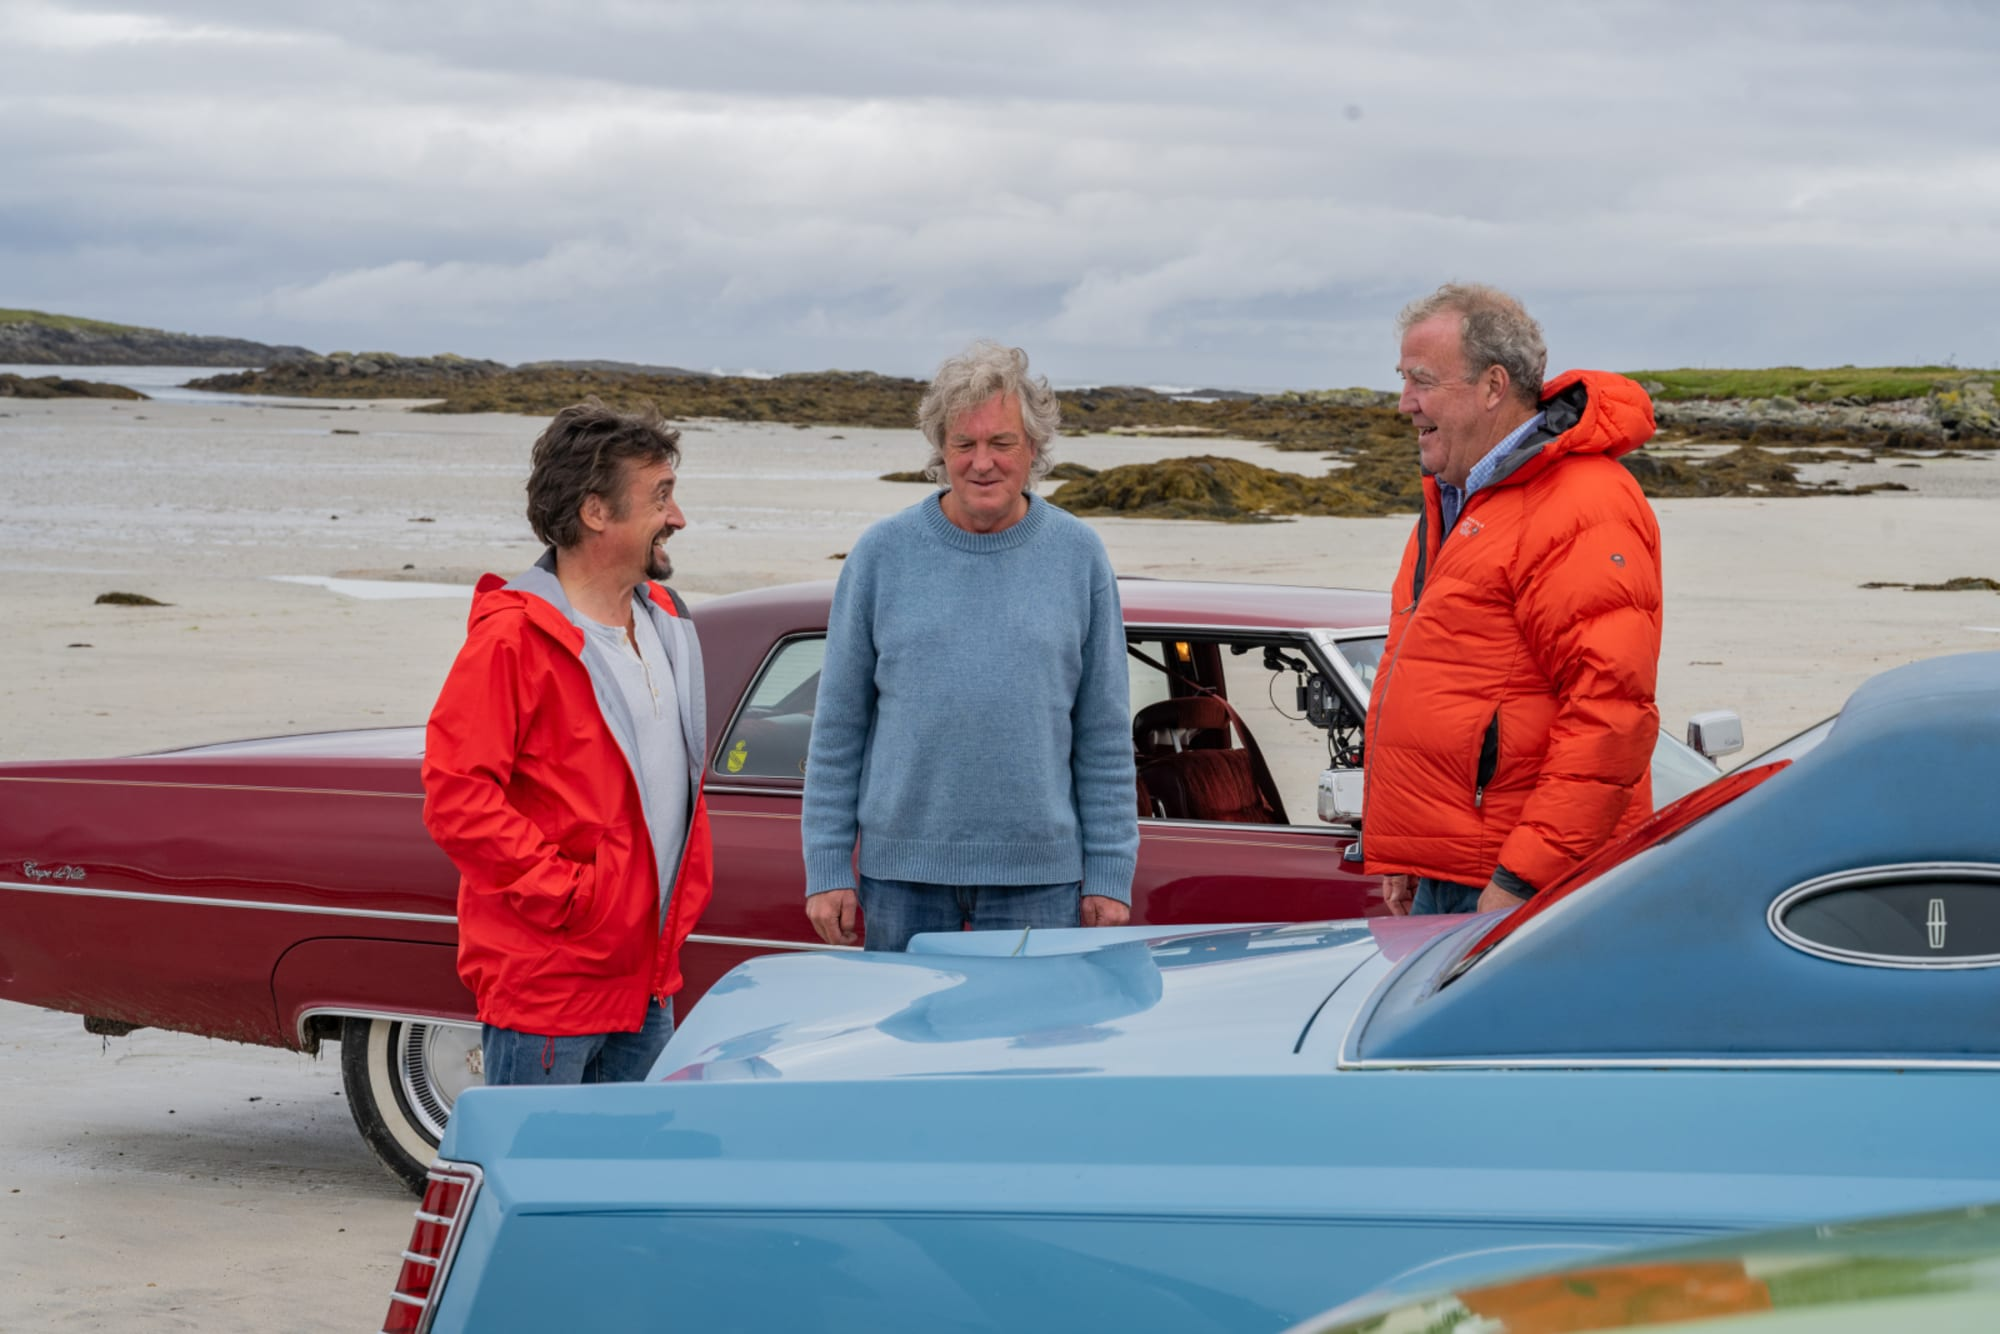 What time is The Grand Tour: Lochdown on Amazon Prime Video?